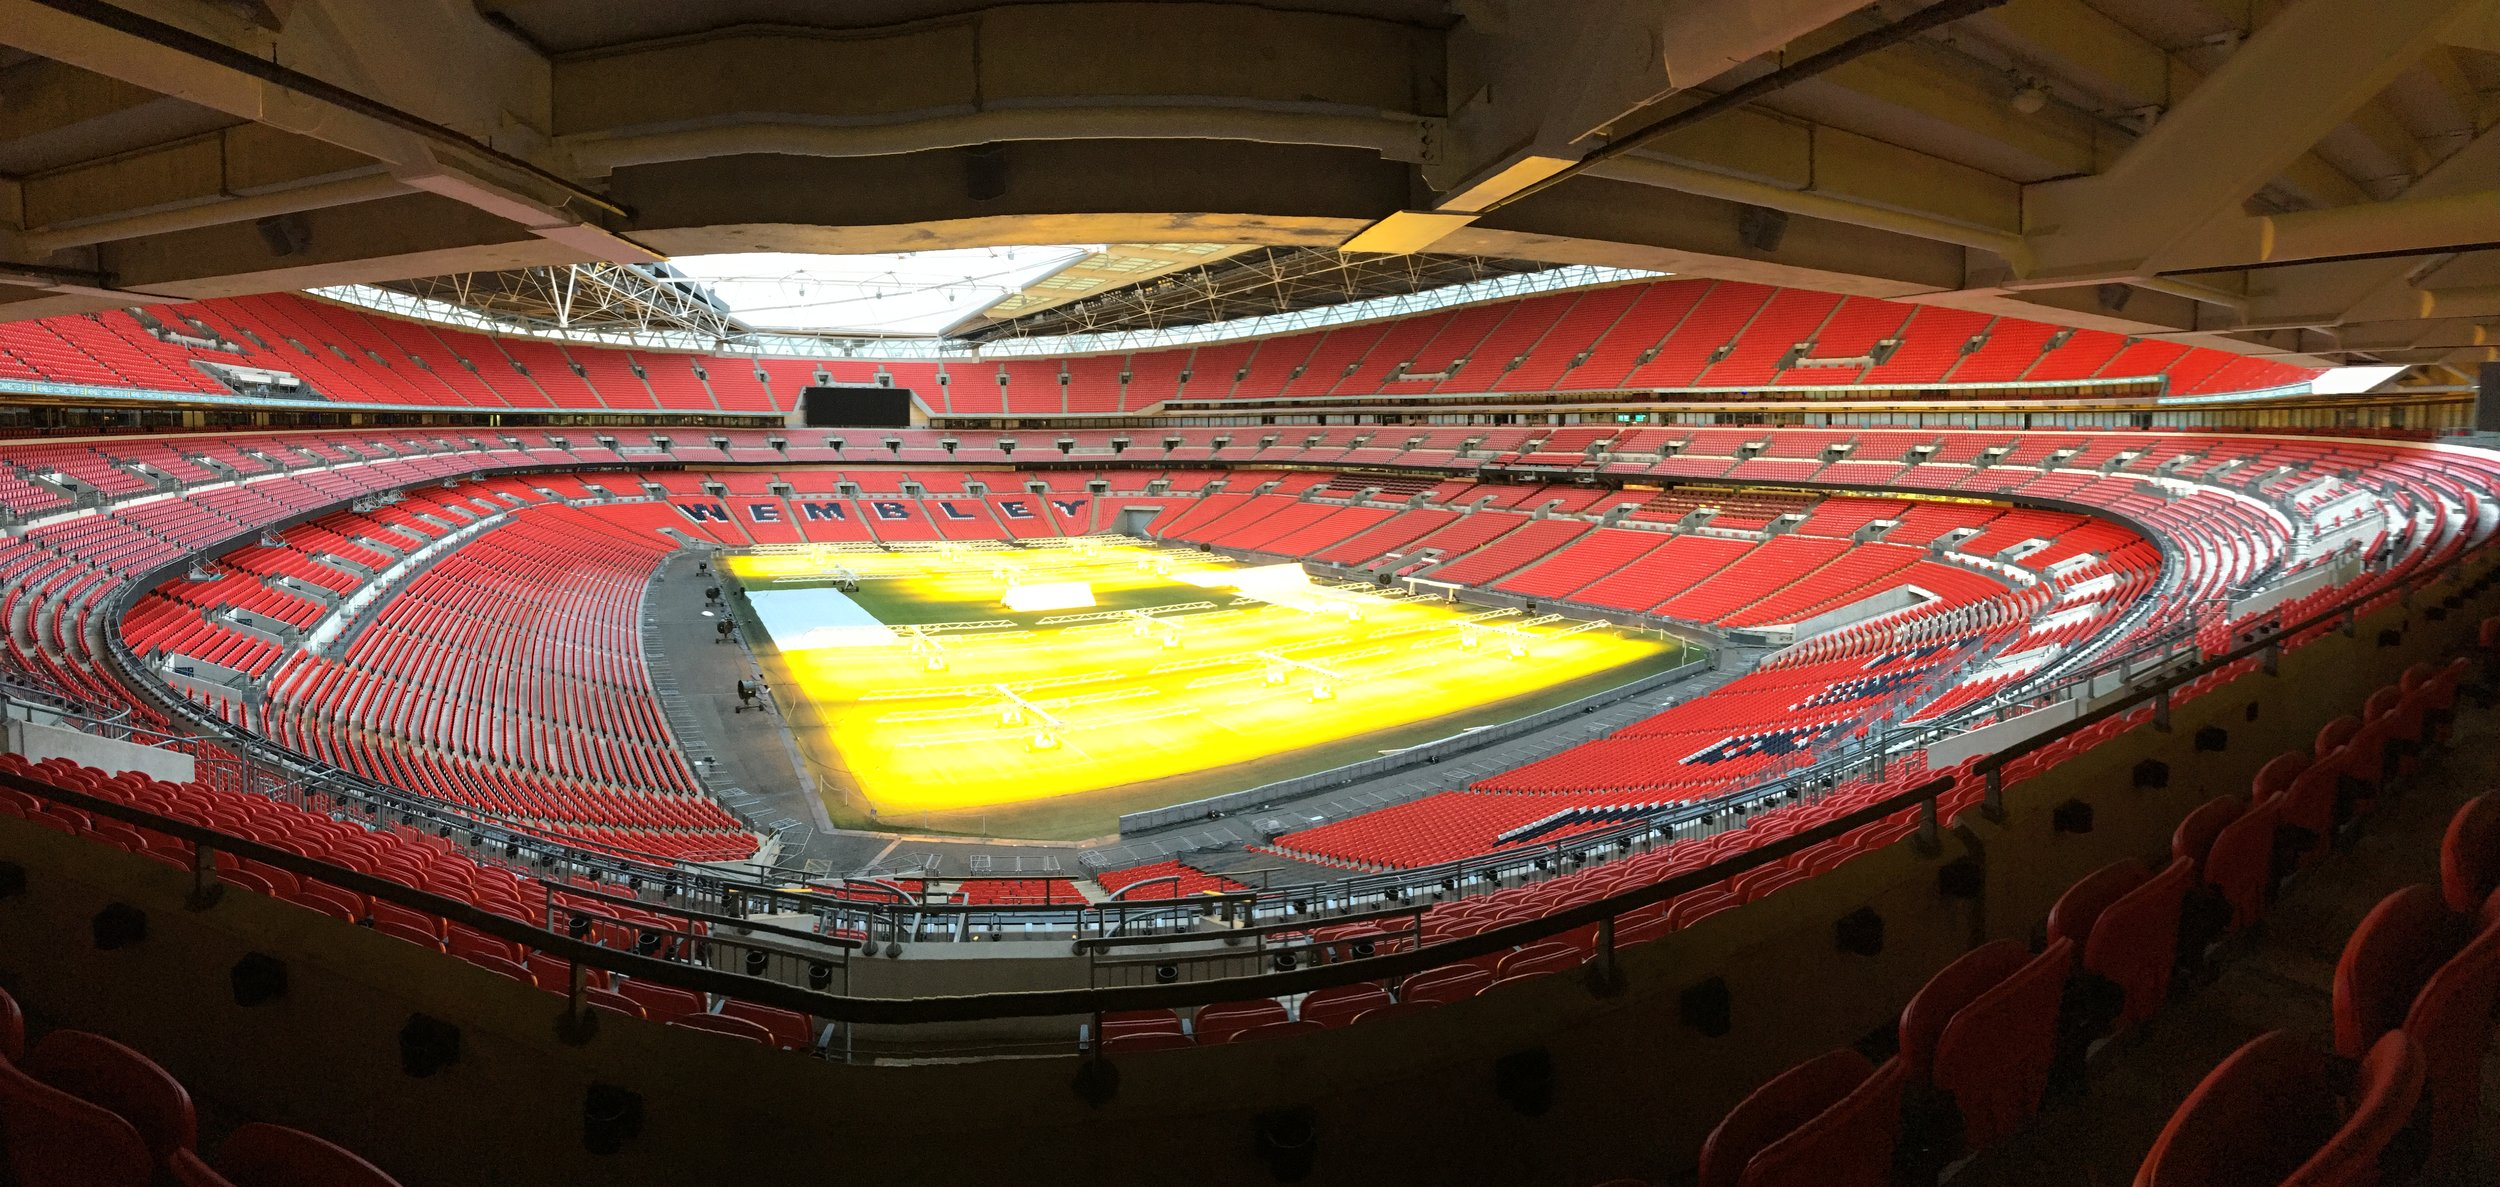 View of Wembley Stadium from the conference room